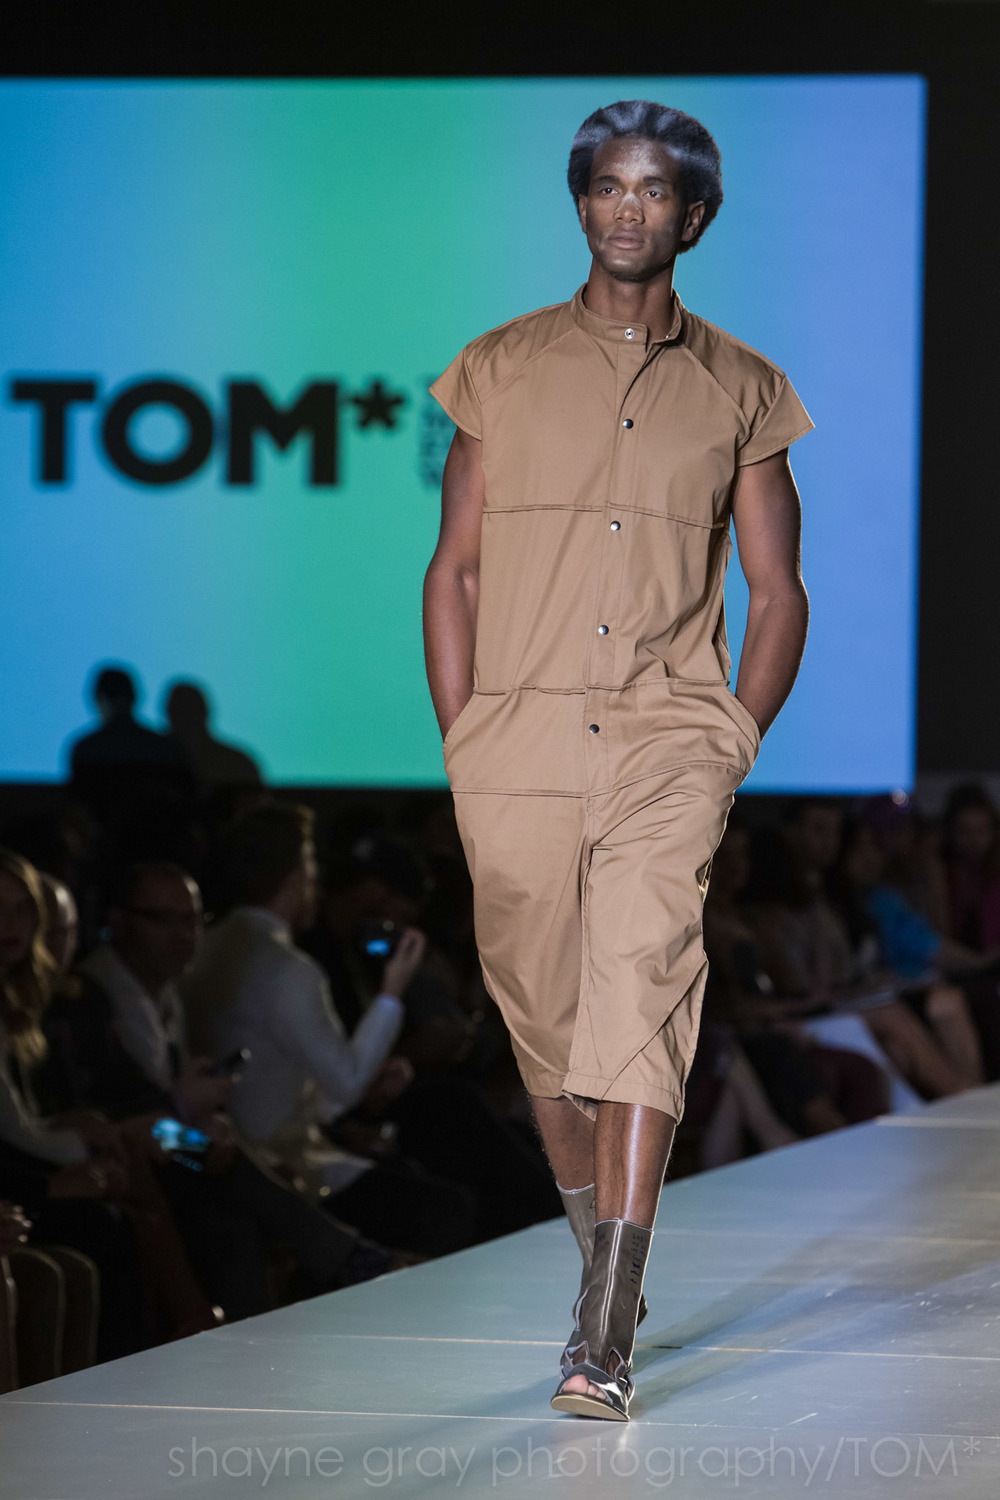 Shayne-Gray-Toronto-men's-fashion_week-TOM-jose-duran-7729.jpg